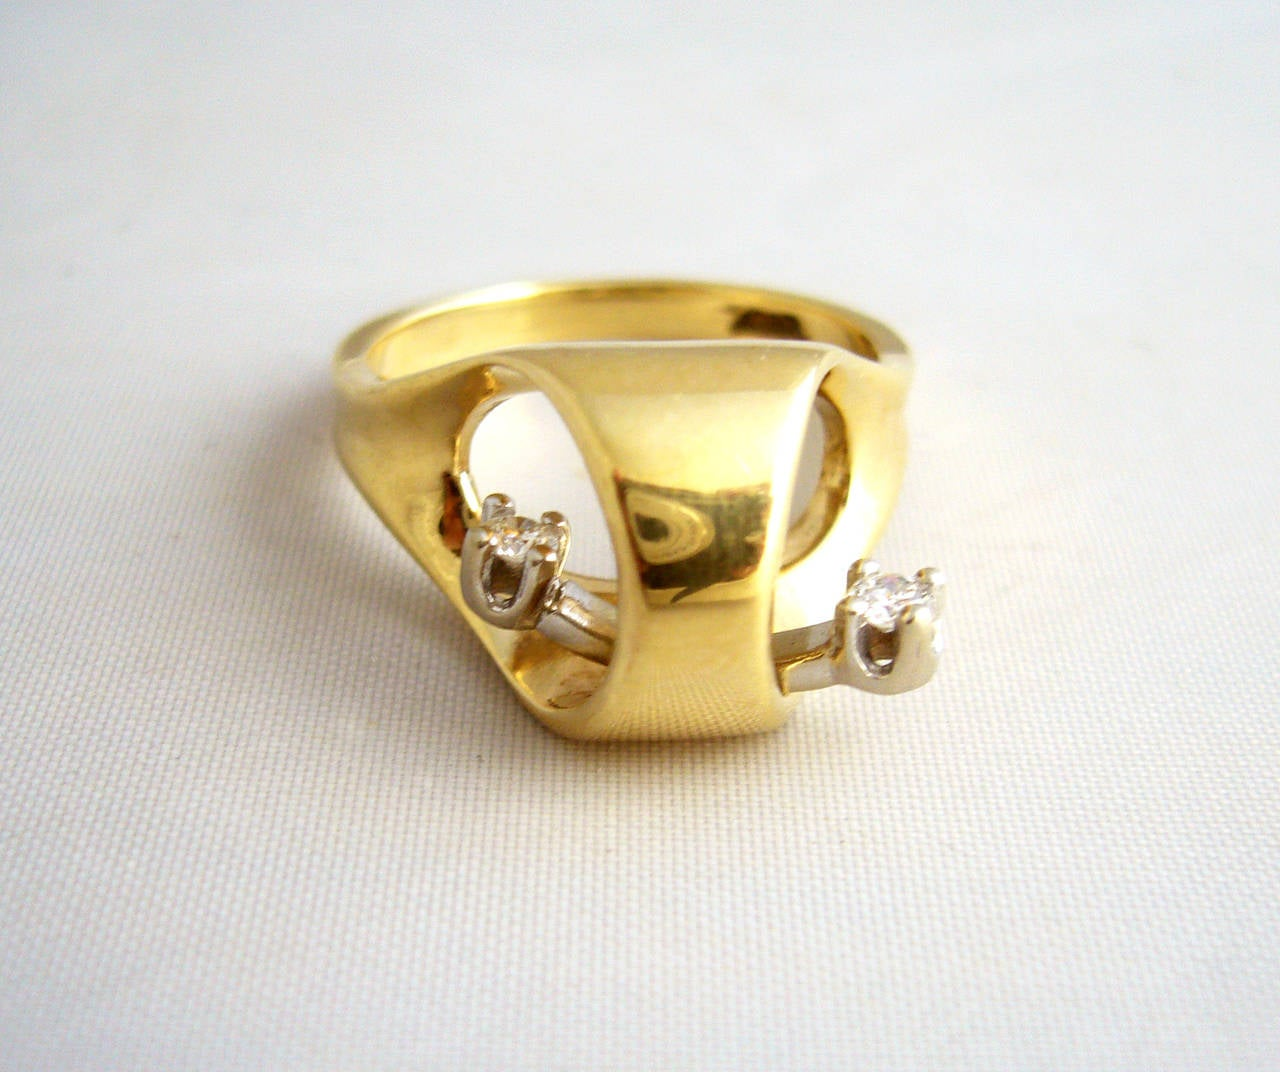 An interesting 14k gold and diamond ring circa 1960's.  Diamonds are suspended within the ring, set in white gold have a swinging, teeter totter movement.  Cool alternative to an engagement or wedding ring.  A finger size 6.5 and signed 14k.  In